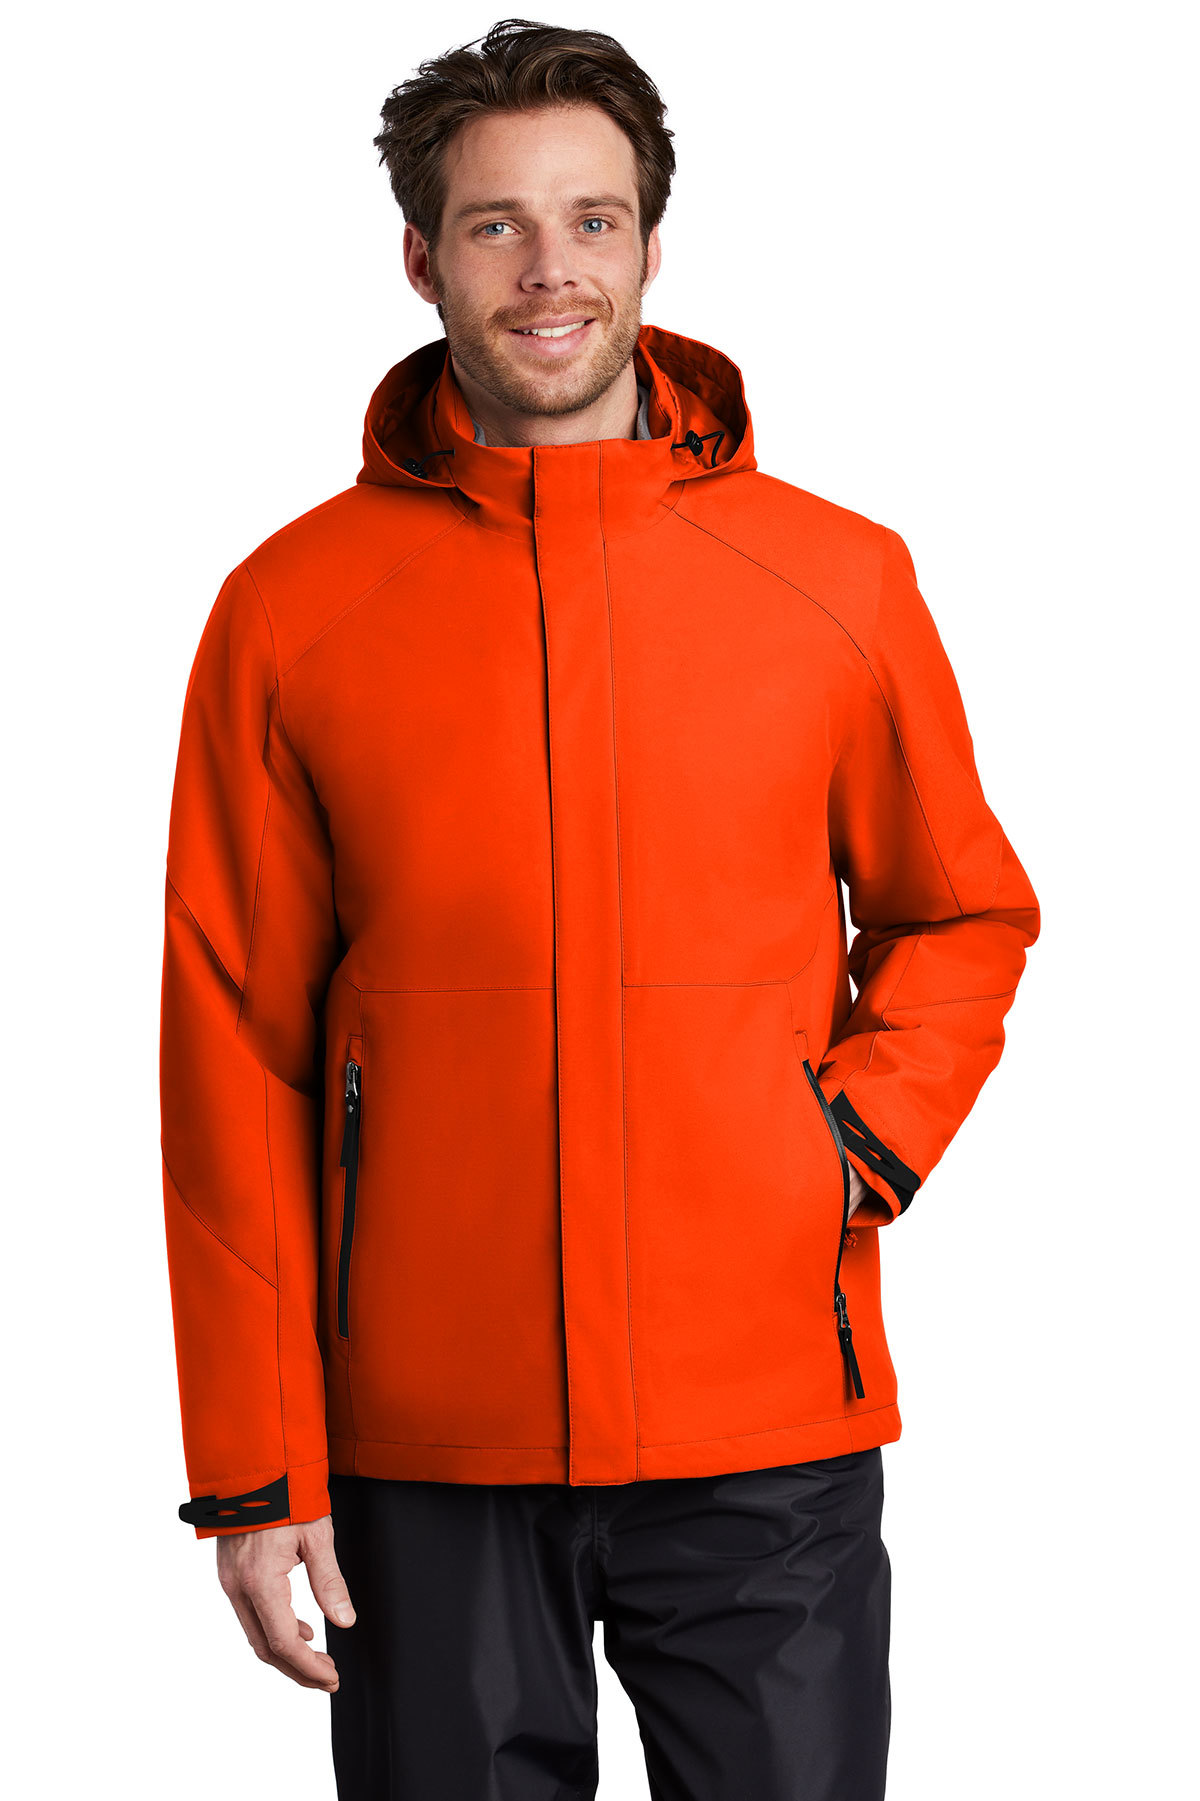 Port Authority J405 - Insulated Waterproof Tech Jacket